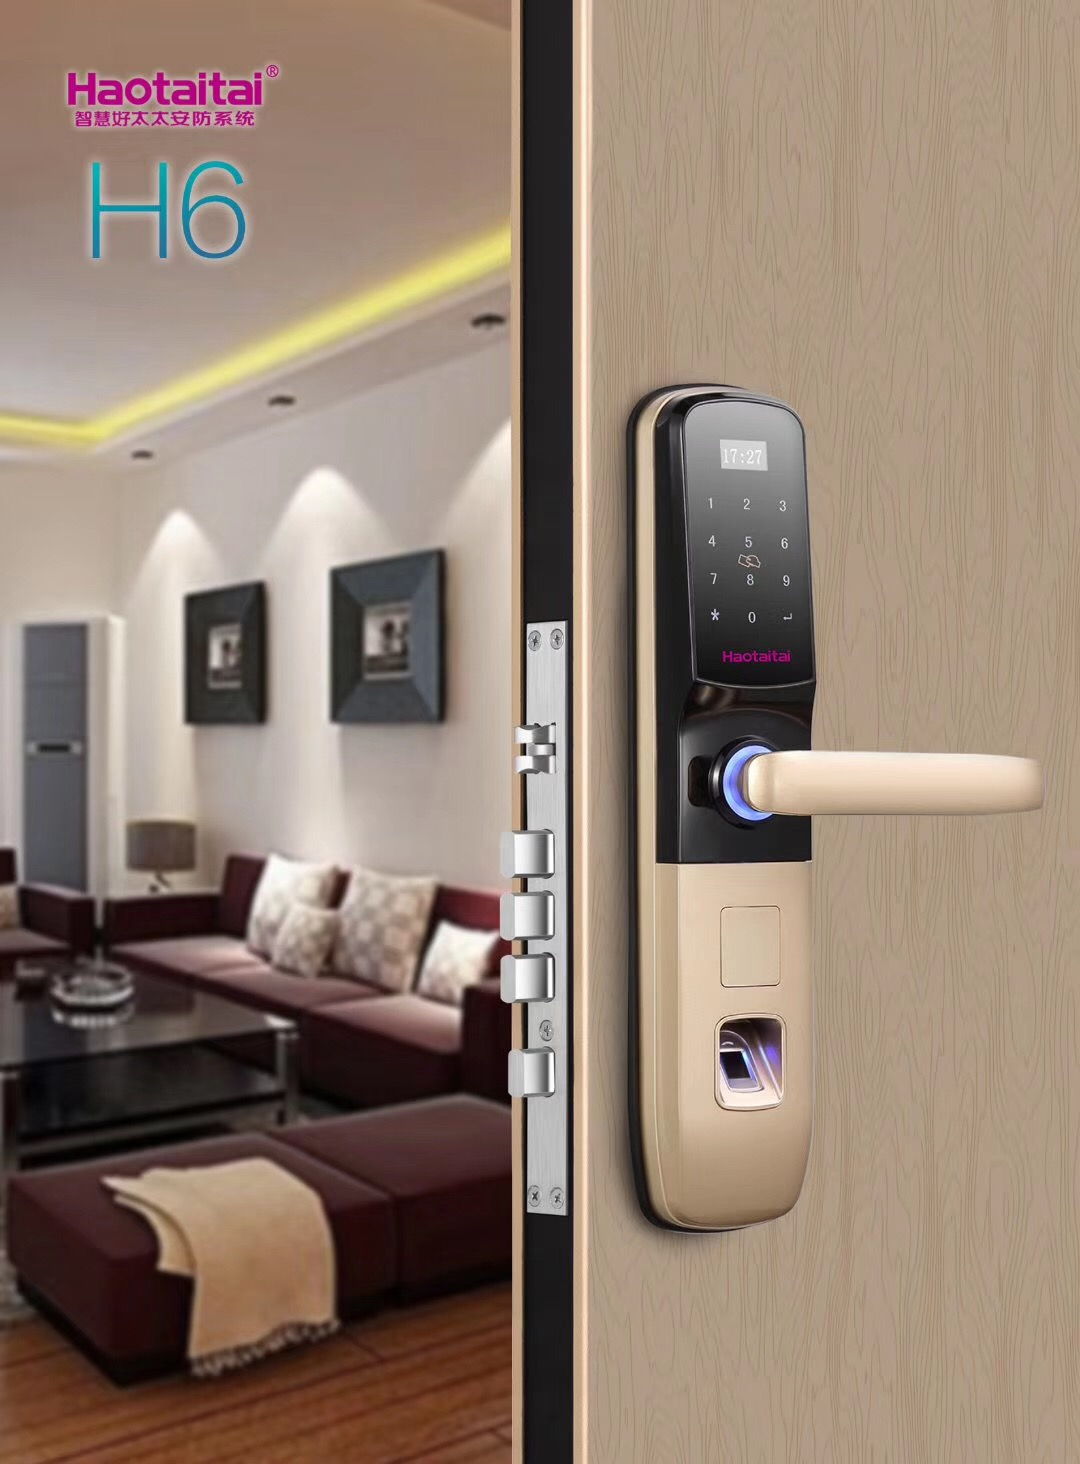 Stainless steel double locked swipe key card reader sliding door lock